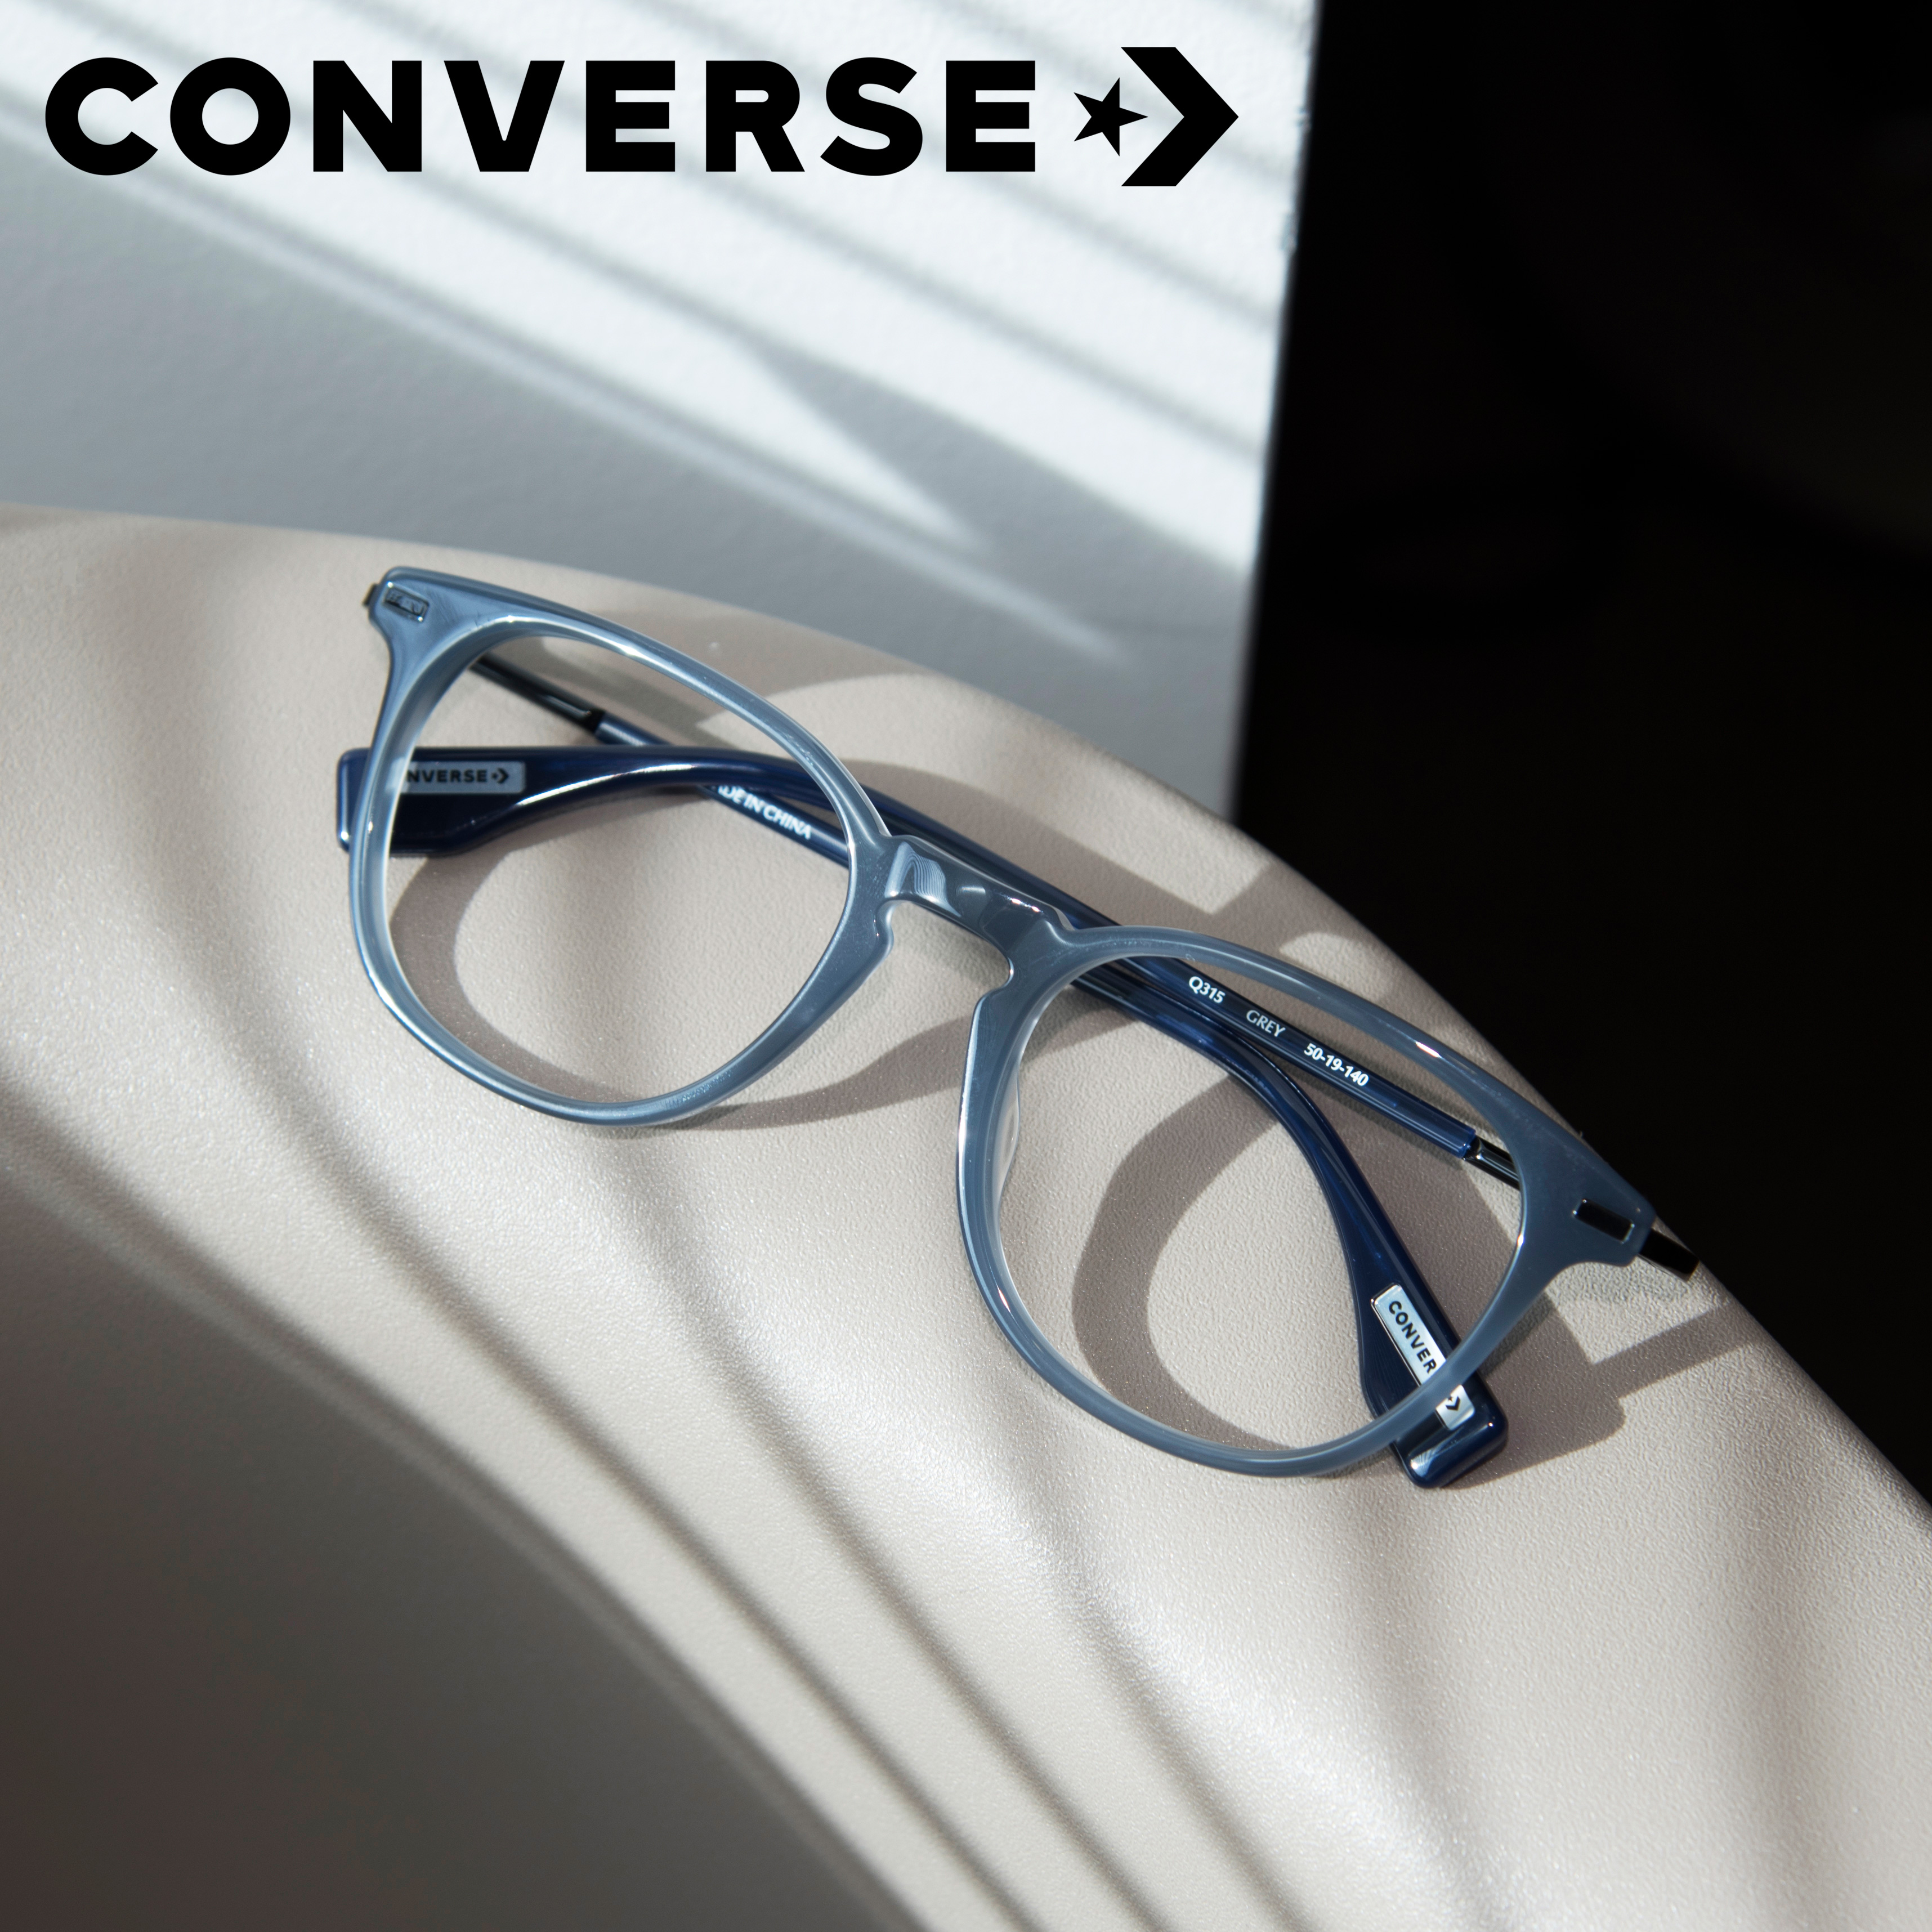 ed3df1a1367938 New Converse Frames and an Awesome Instagram Giveaway